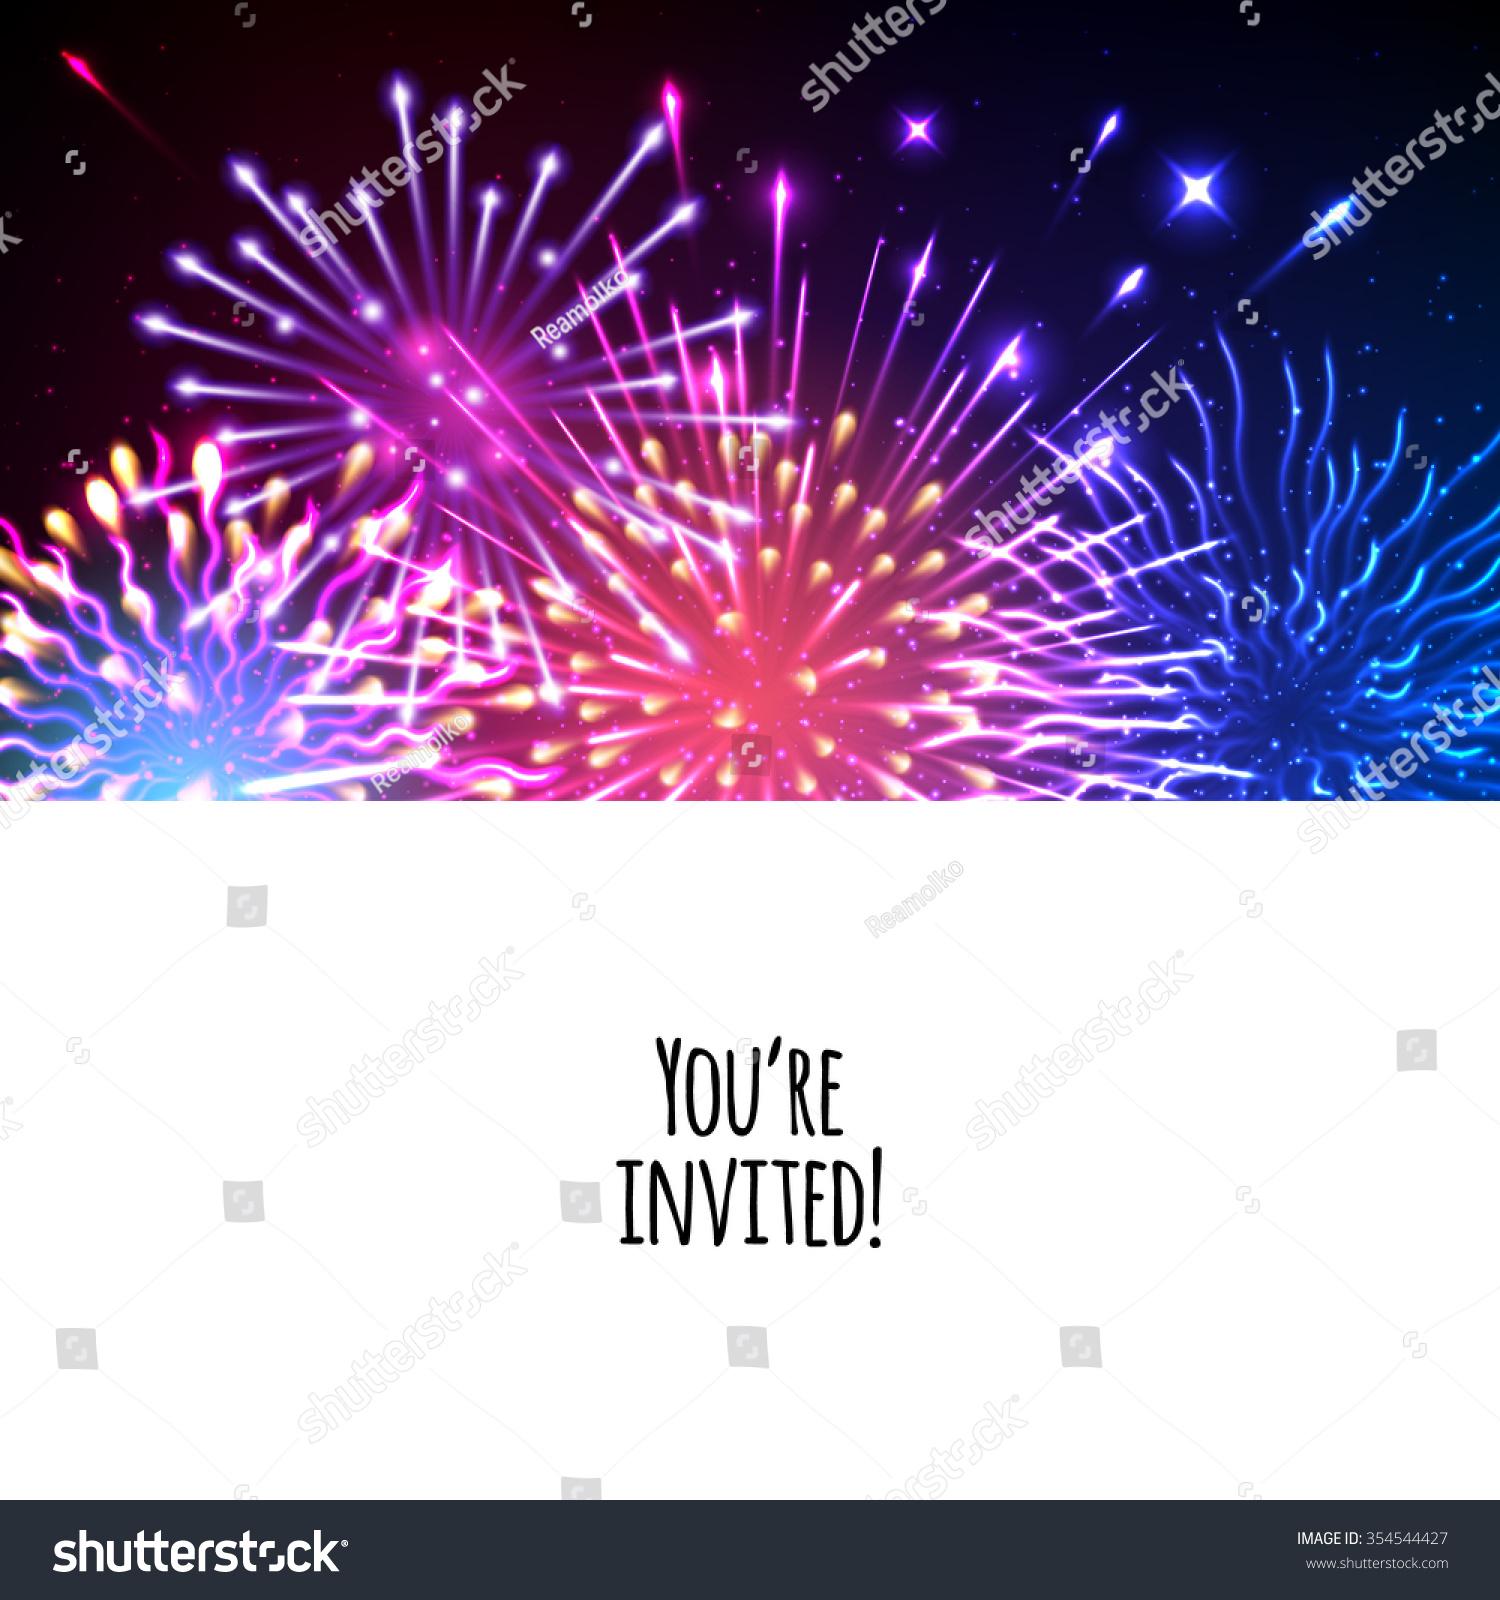 universal invitation card template design with fireworks background wedding birthday party celebration